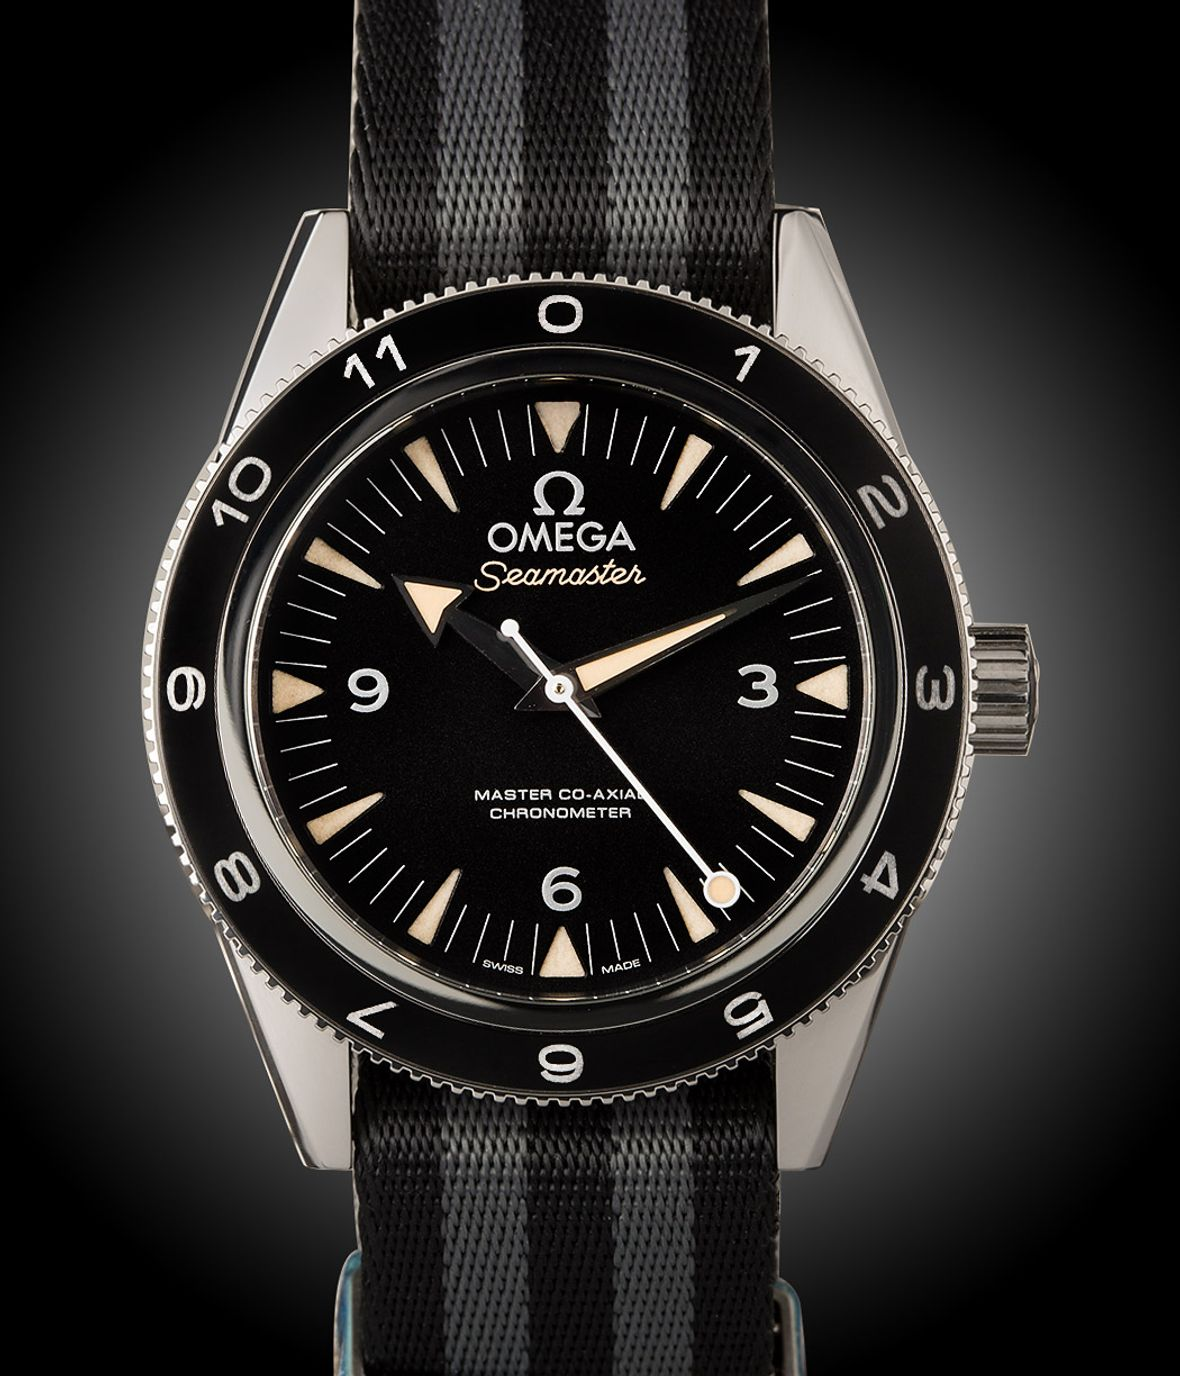 James Bond Omega Seamaster Watches – Every Model Worn By Agent 007